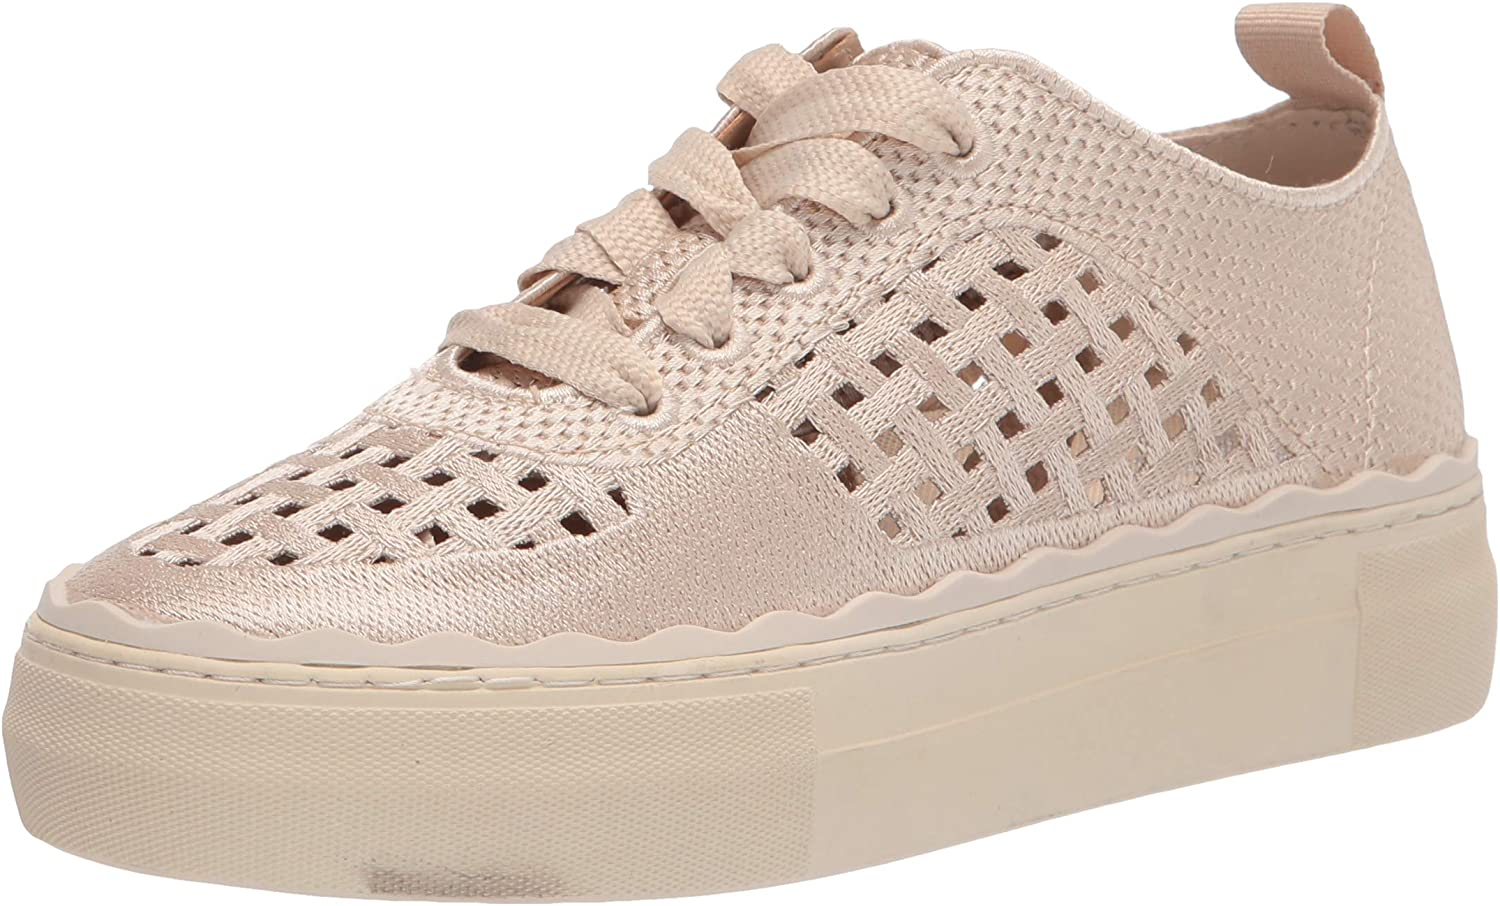 Product Vince Camuto 2021 autumn and winter new Women's Jamminna Woven Sneaker